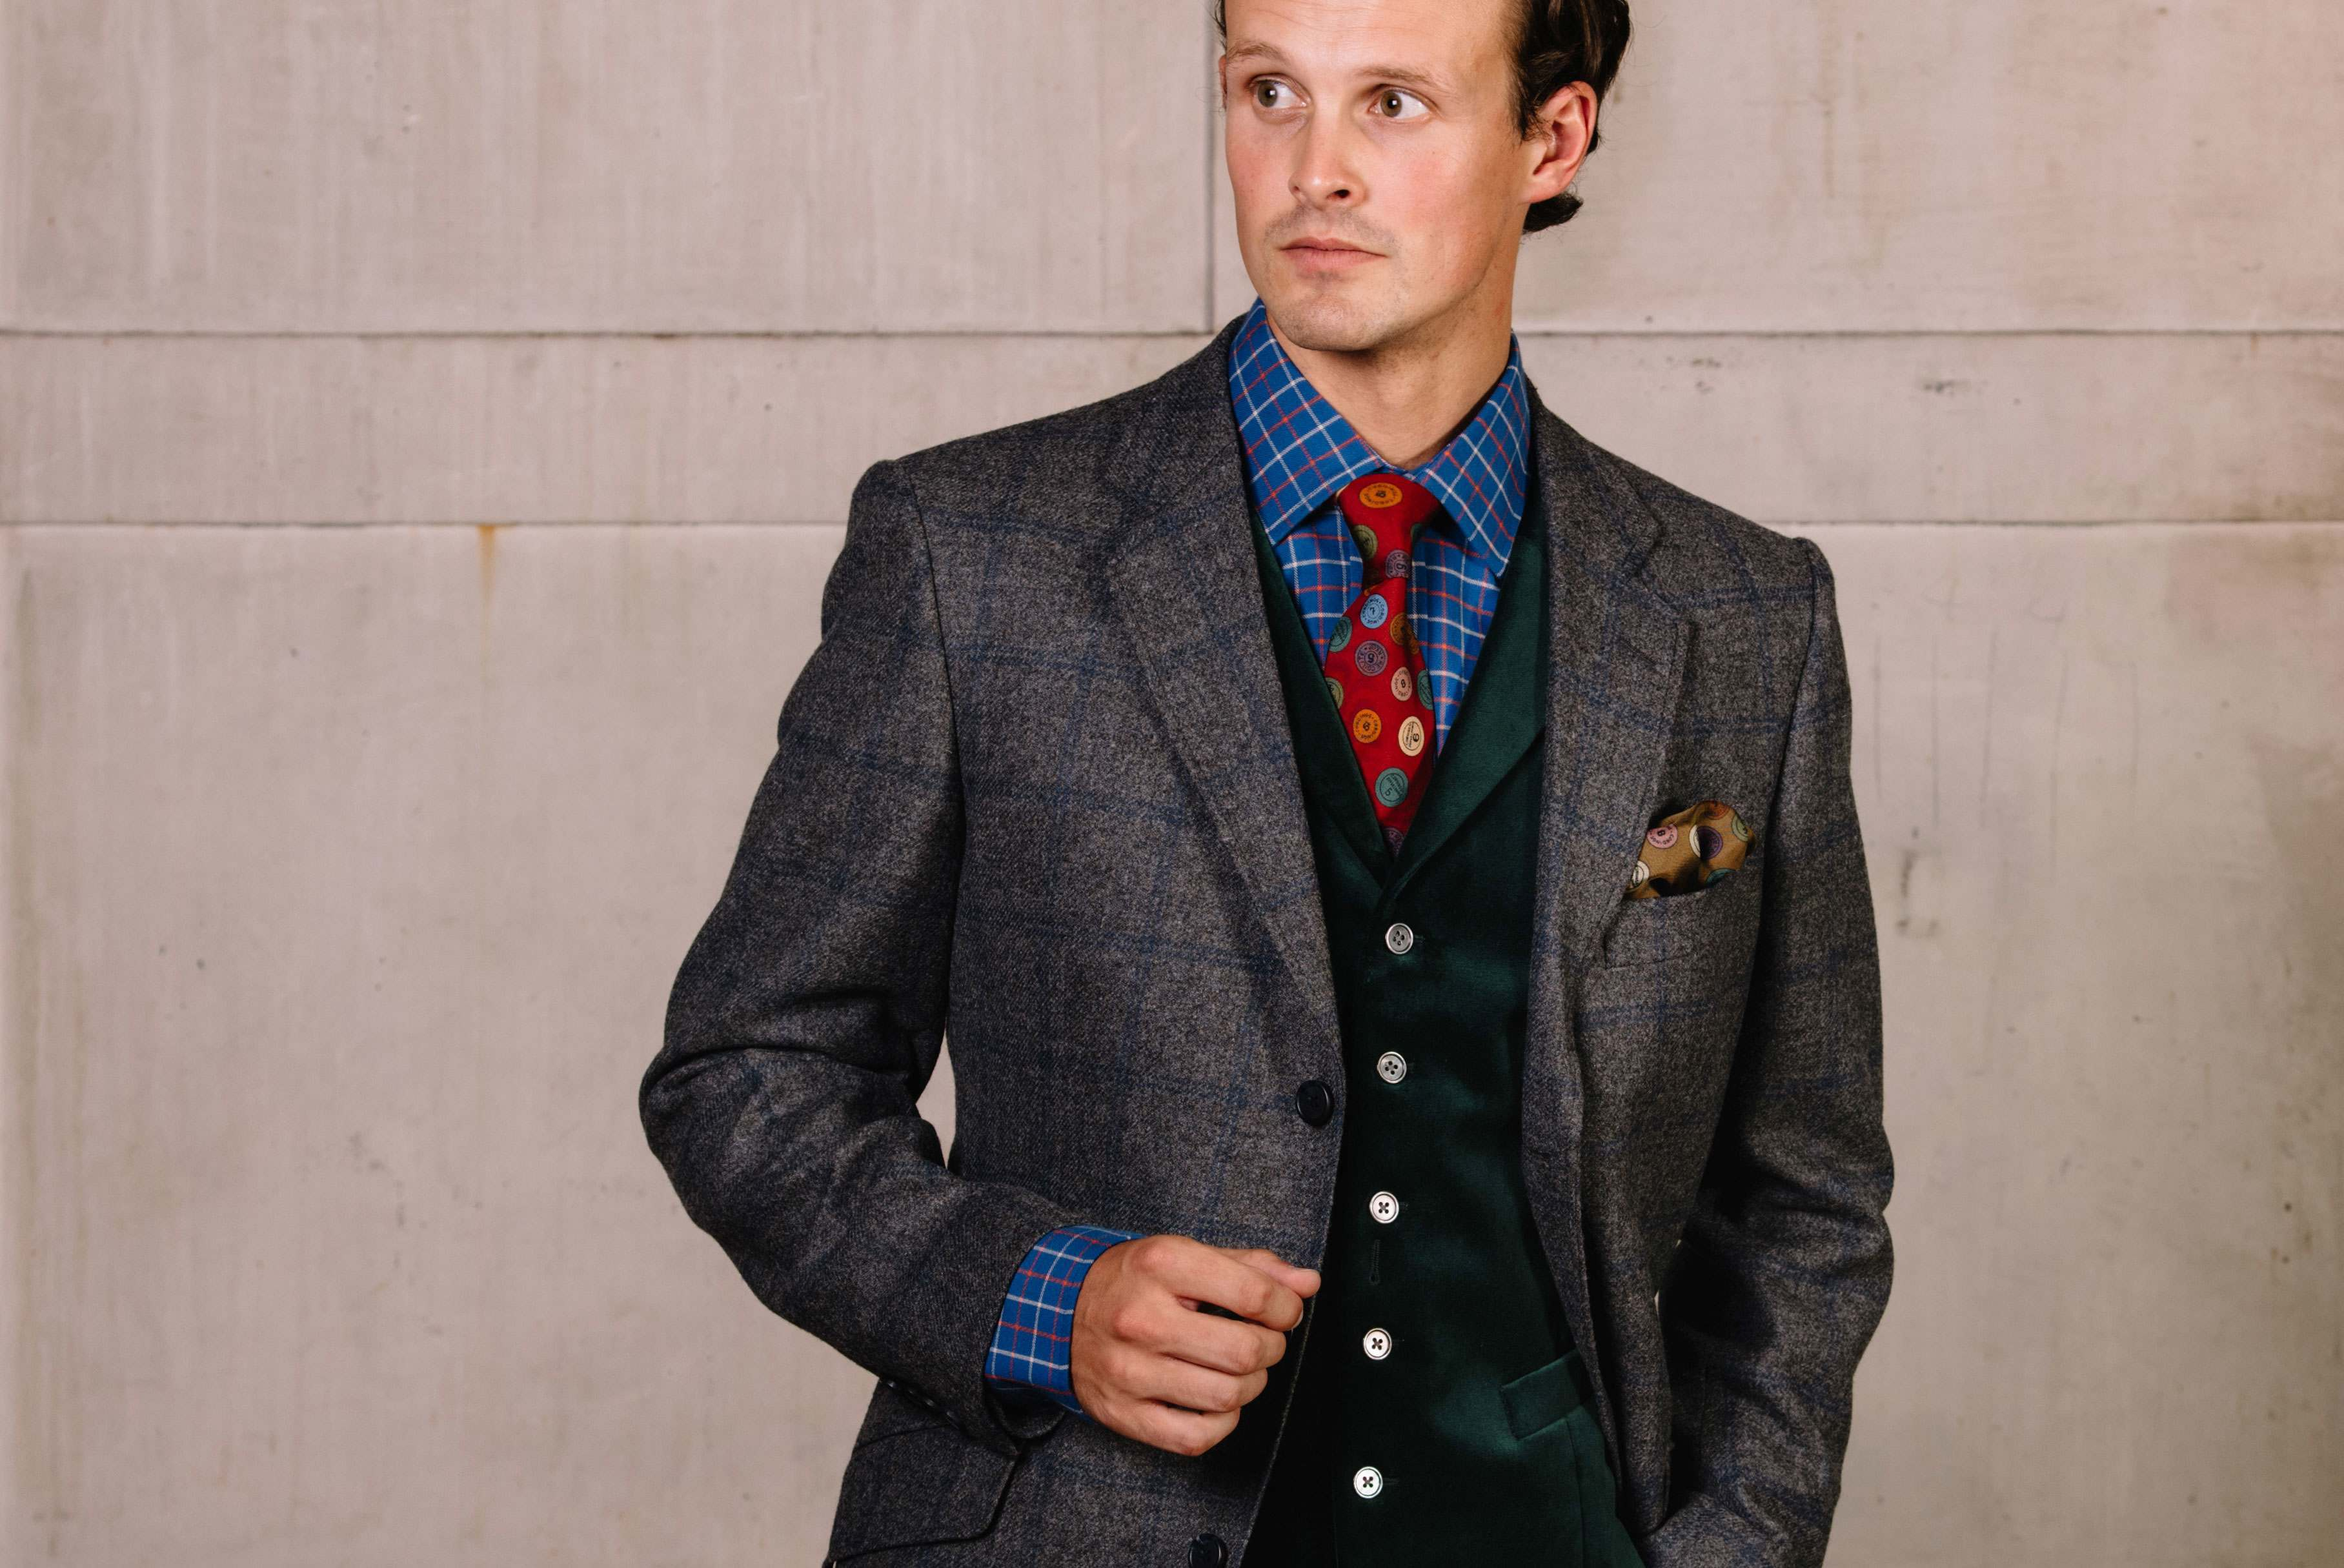 What To Wear To Wear: The Westminster Jacket